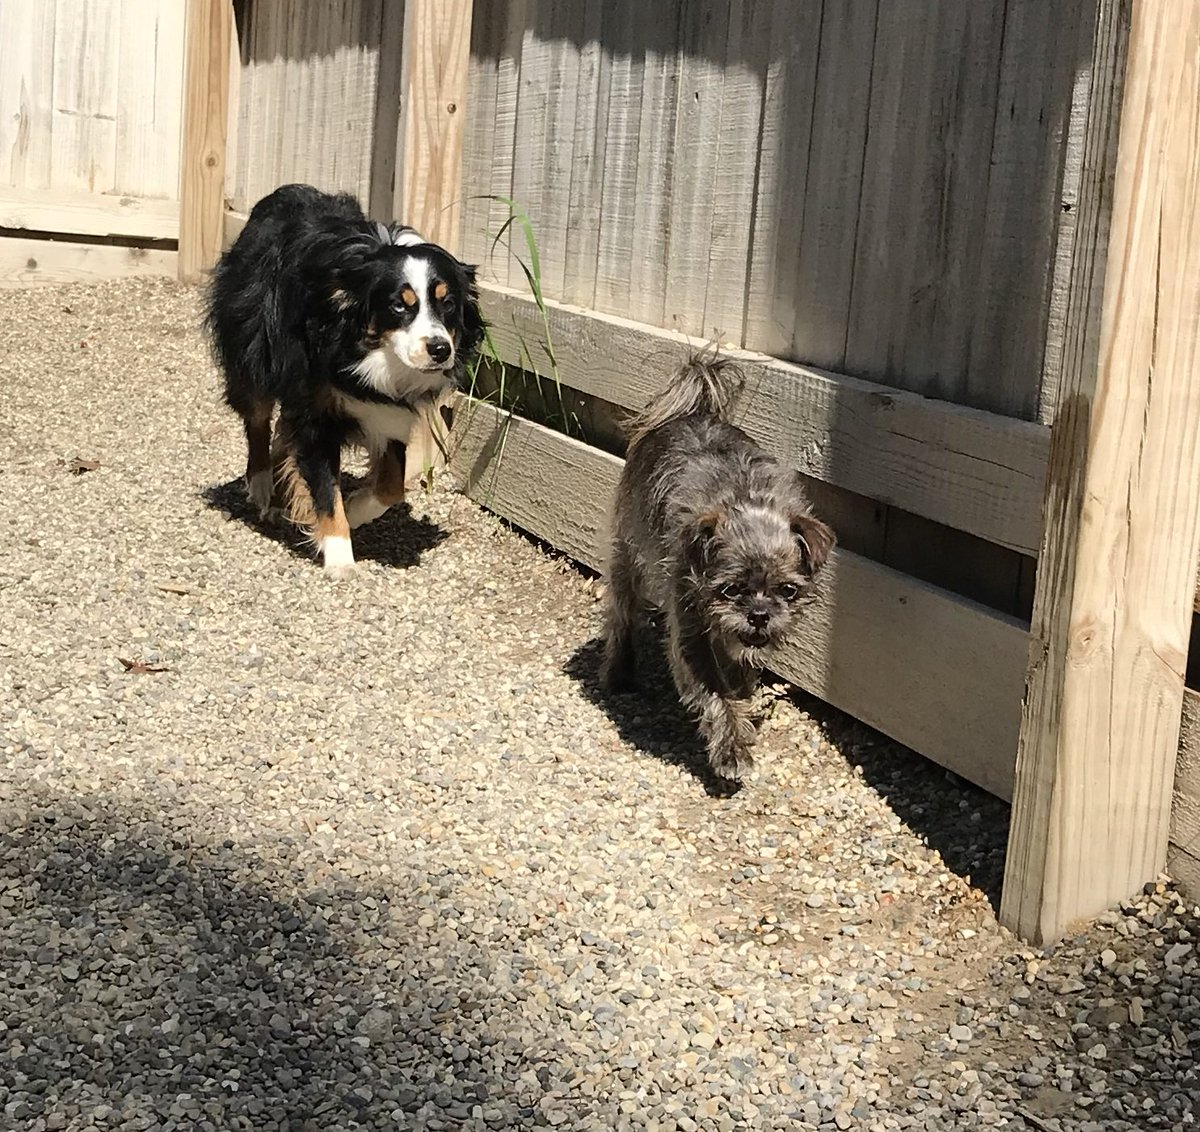 Axel and Lola play follow the leader!